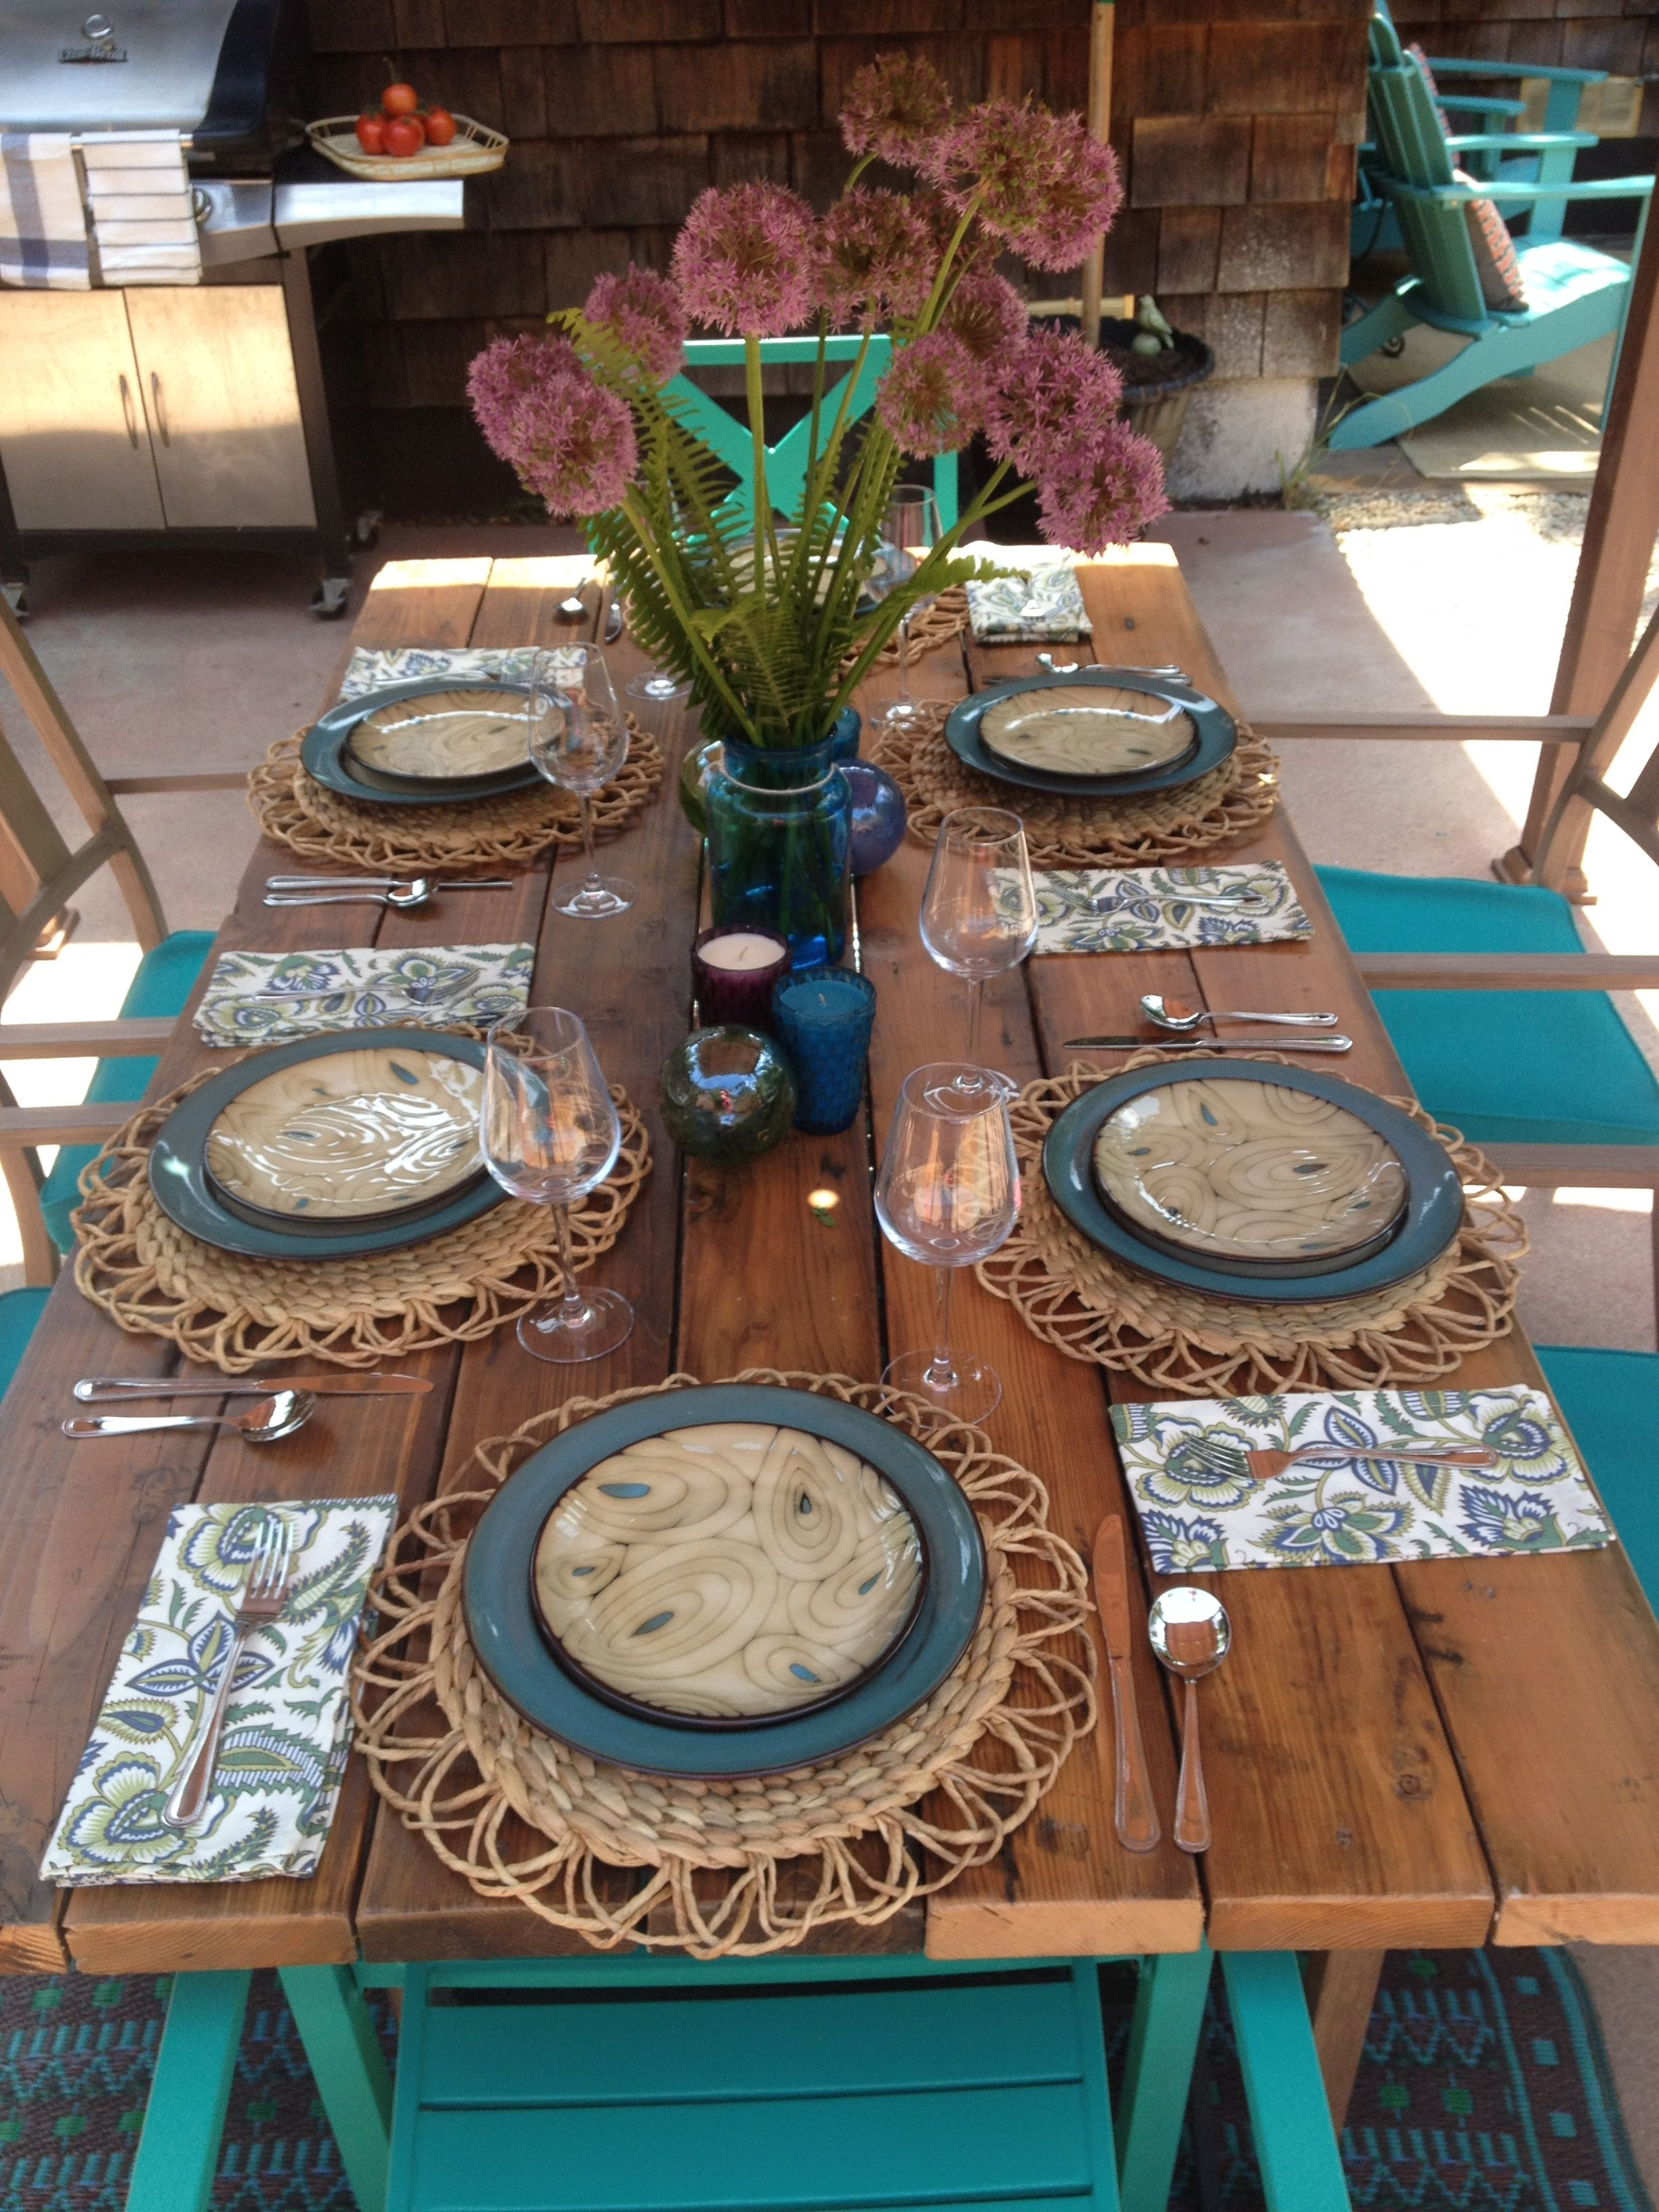 Reclaimed lumber table with rustic chic table setting #ihatemyyard ...